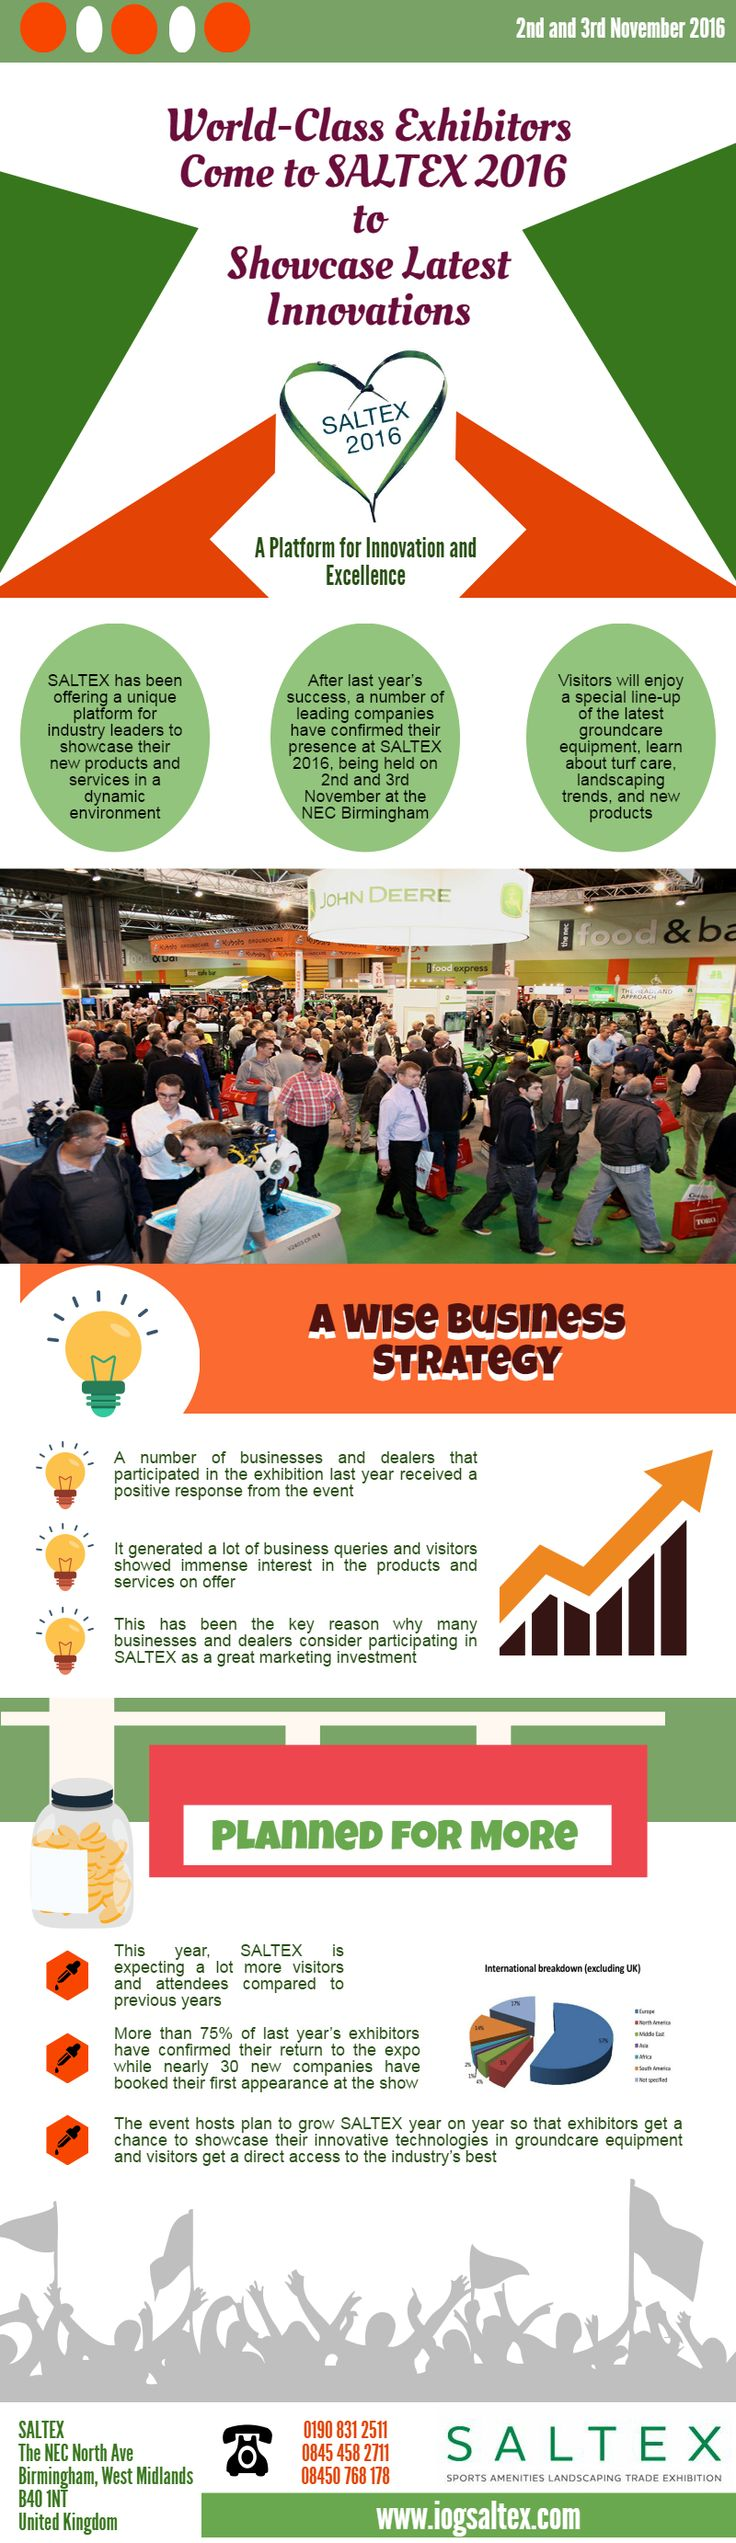 World-Class Exhibitors Come to SALTEX 2016  SALTEX has been offering a unique platform for industry leaders to showcase their new products and services in a dynamic environment. After last year's success, a number of leading companies have confirmed their presence at SALTEX 2016, being held on 2nd and 3rd November at the NEC Birmingham. Visitors will enjoy a special line-up of the latest groundcare equipment, learn about turf care, landscaping trends, and new products.  #Groundcare…